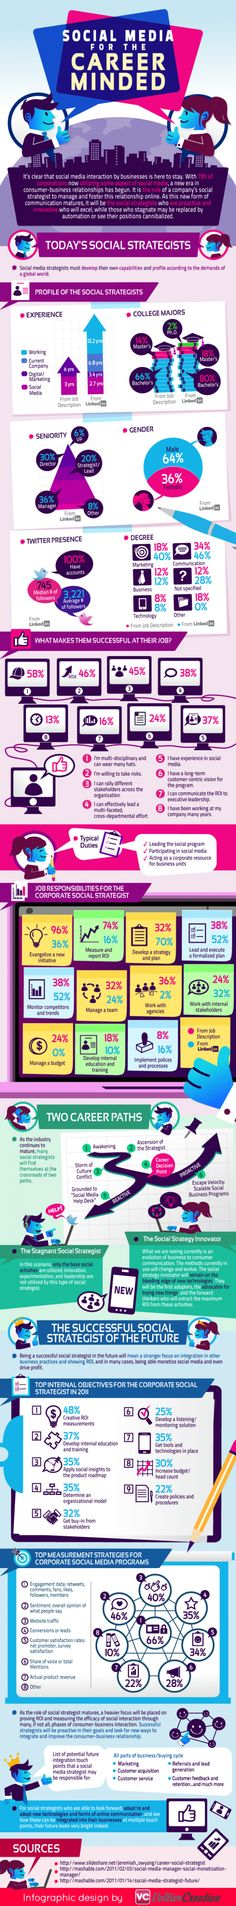 Social Media for the Career Minded